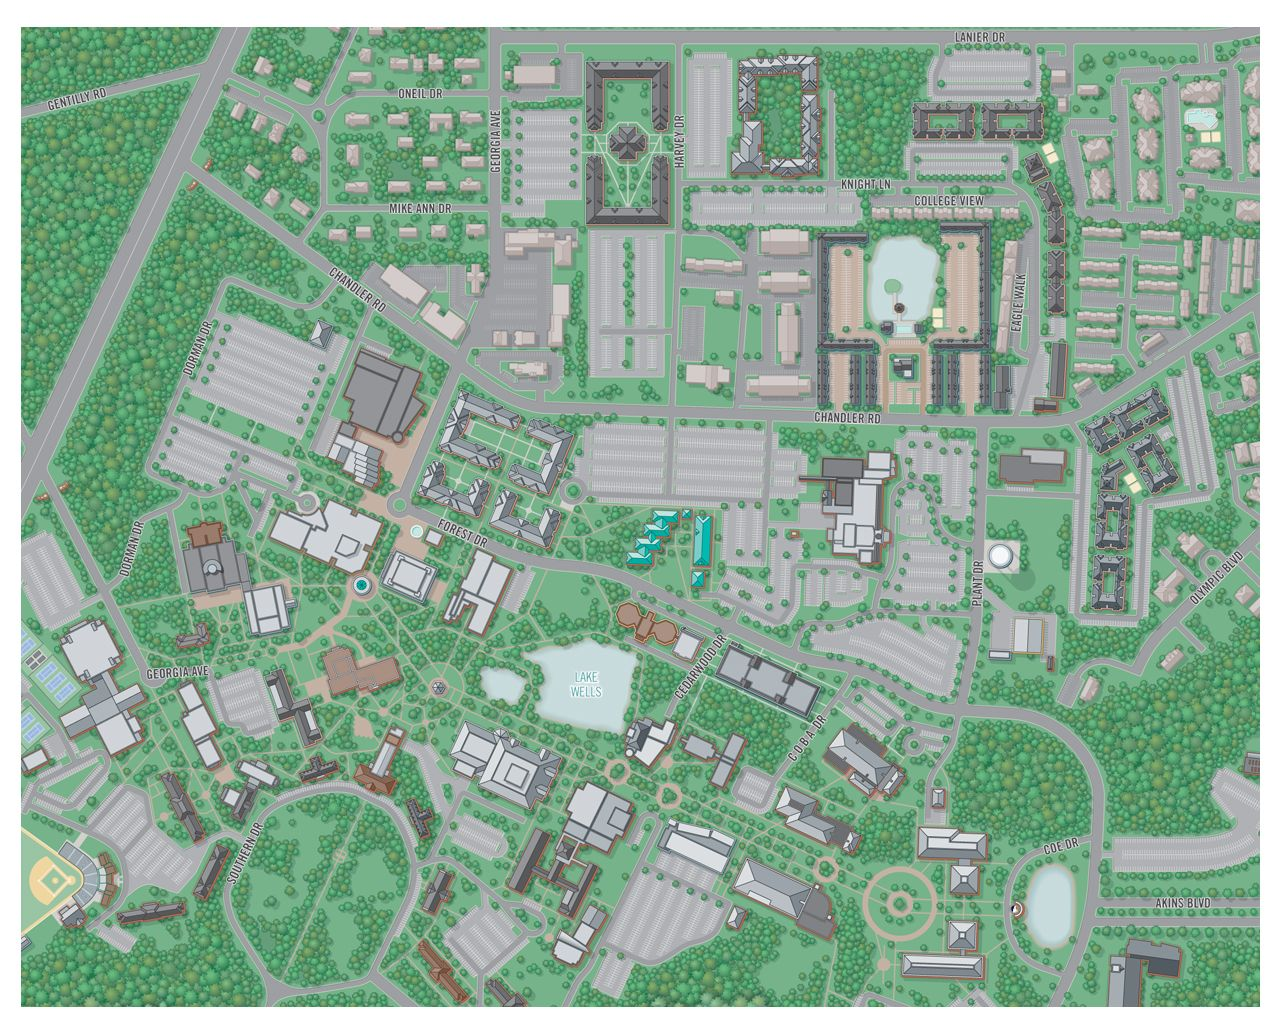 Georgia Southern Map 2D Campus Map Illustration, Georgia Southern University (partial  Georgia Southern Map